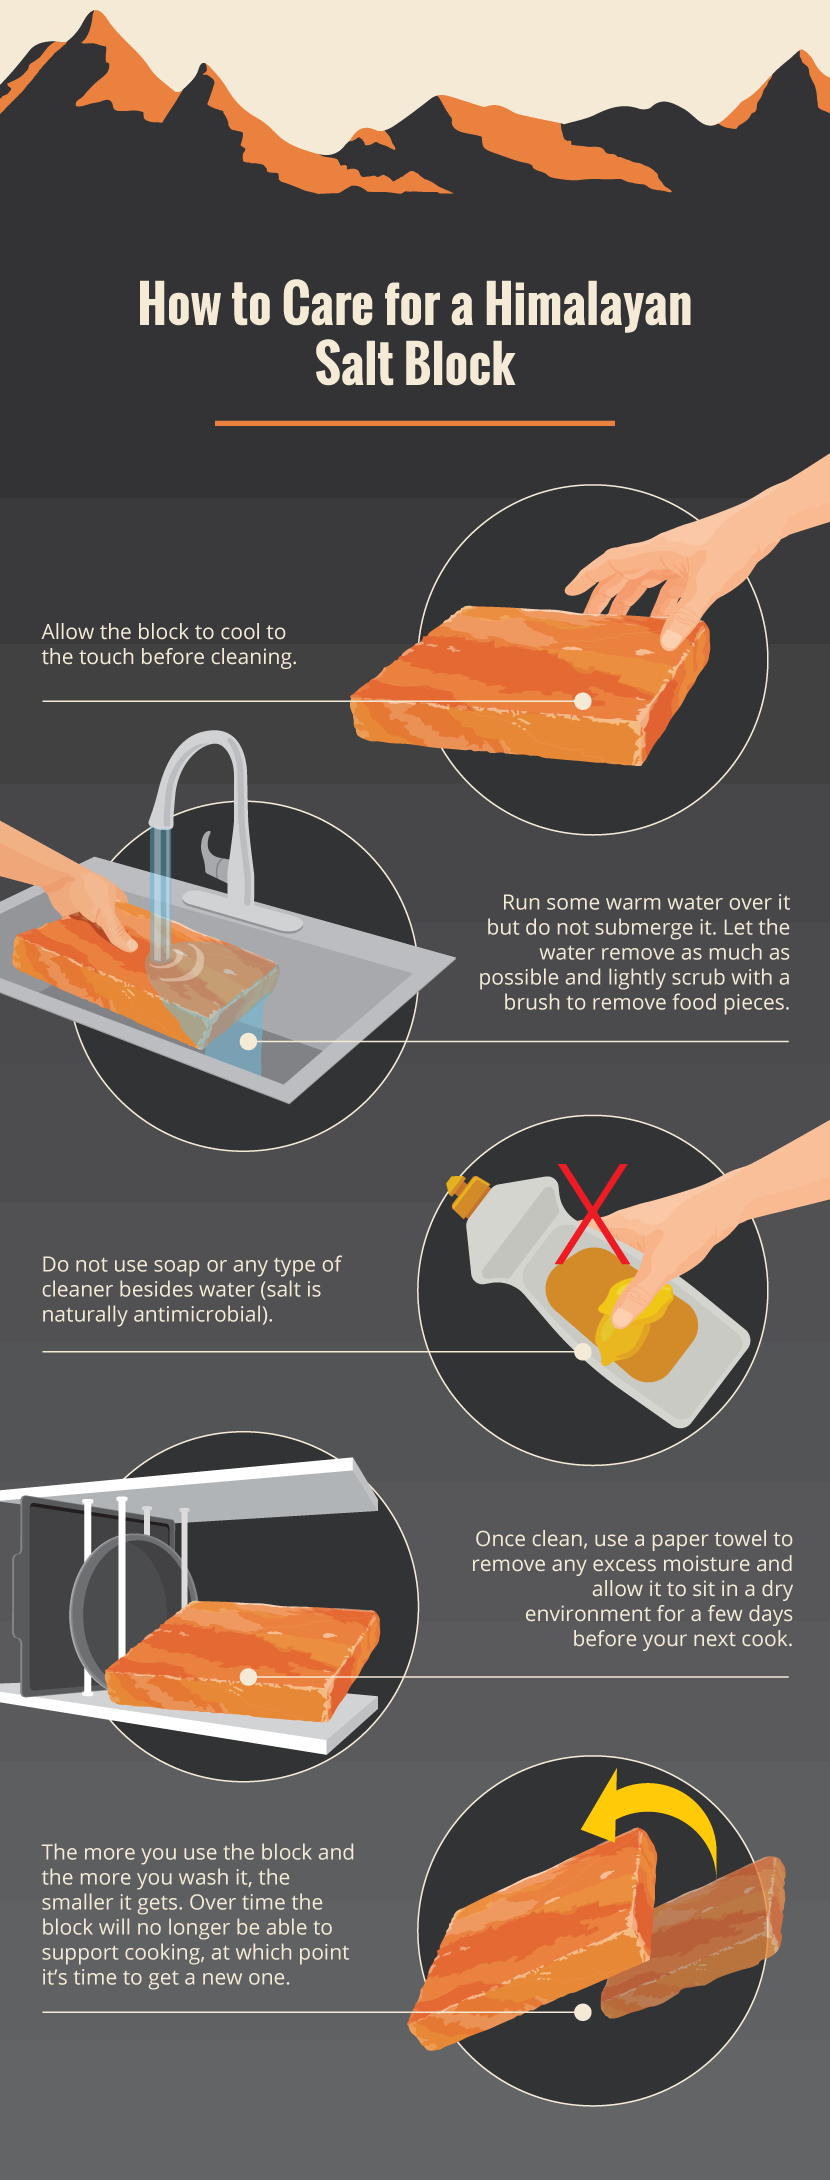 Caring For a Himalayan Salt Block - Grilling on a Himalayan Salt Block